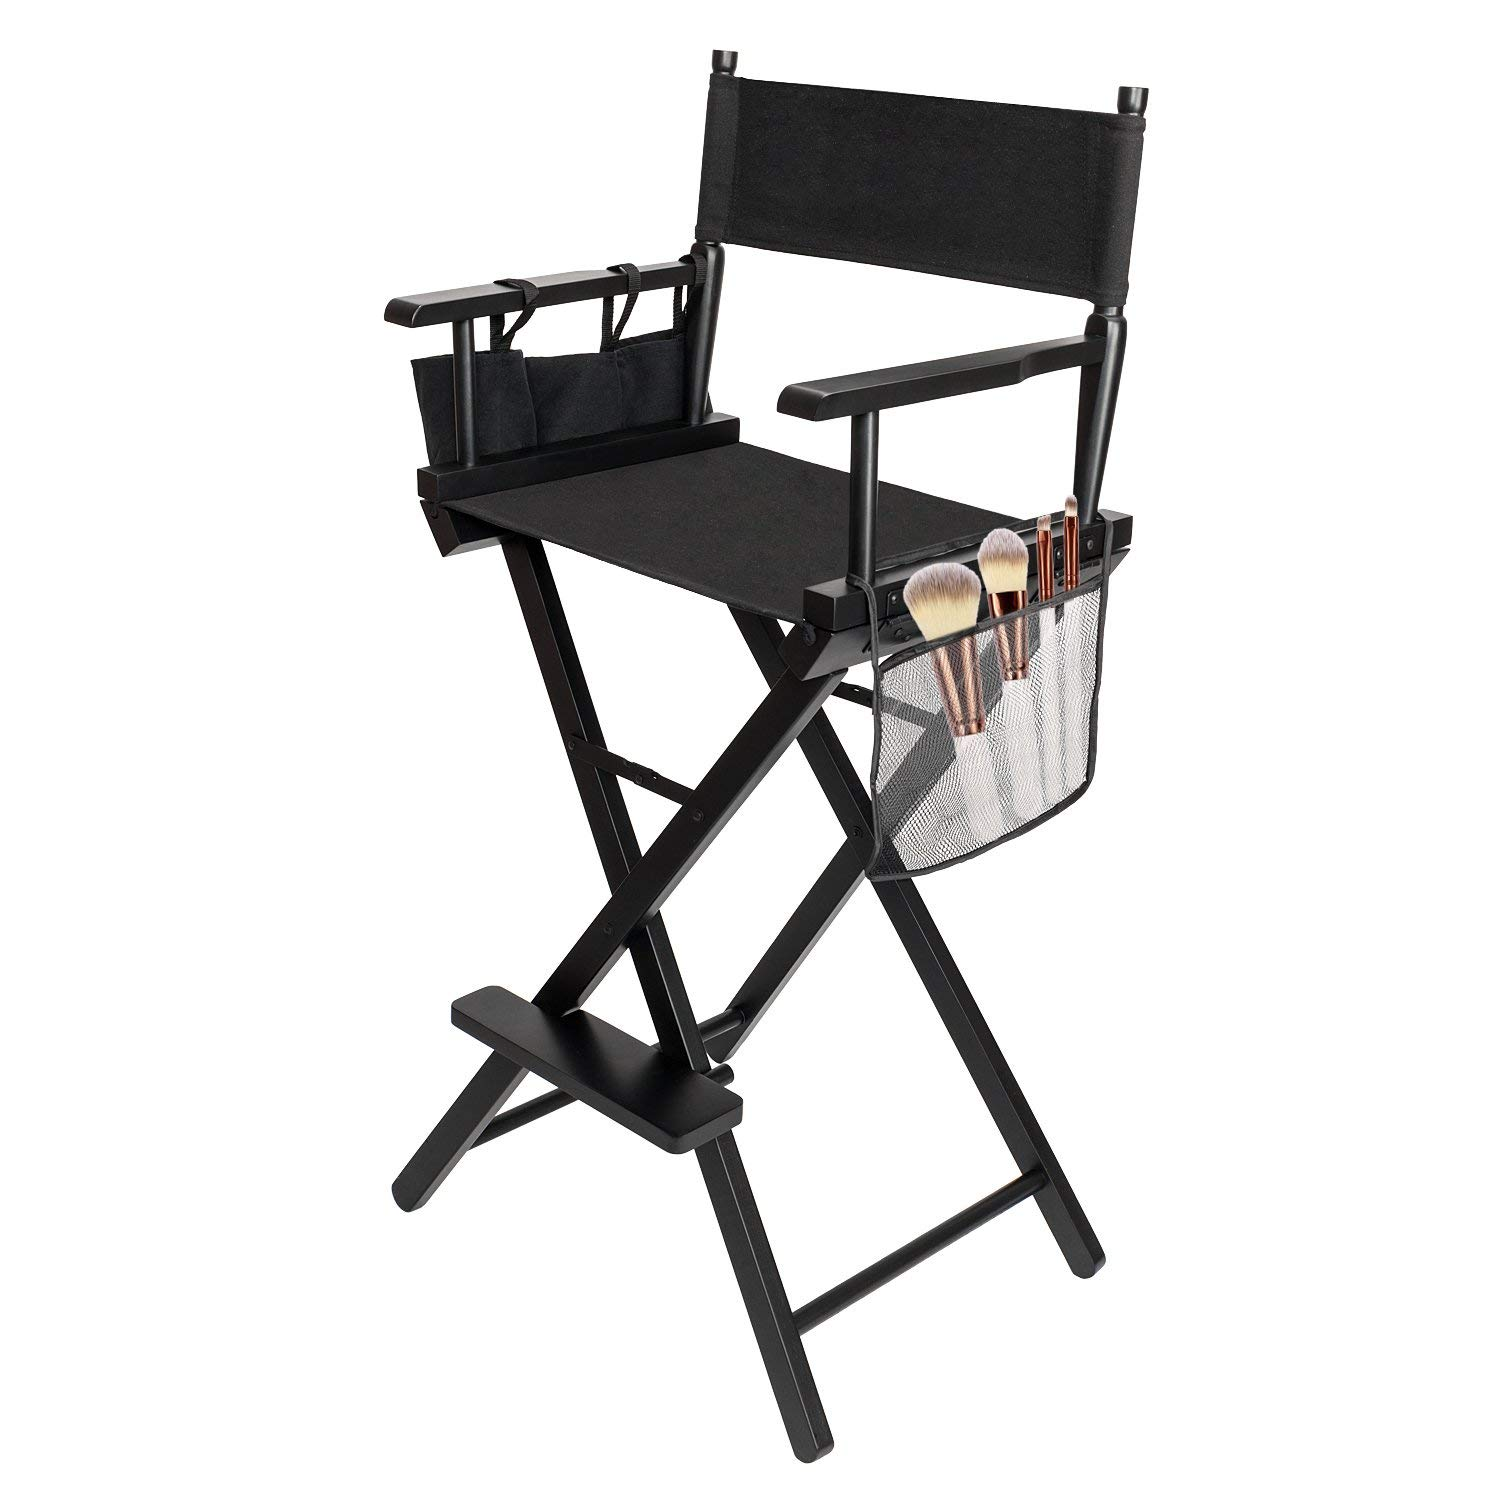 Black Directors Chair Details About Hot Directors Chair 30 Inch Canvas Tall Seat Black Wood Makeup Folding Chair